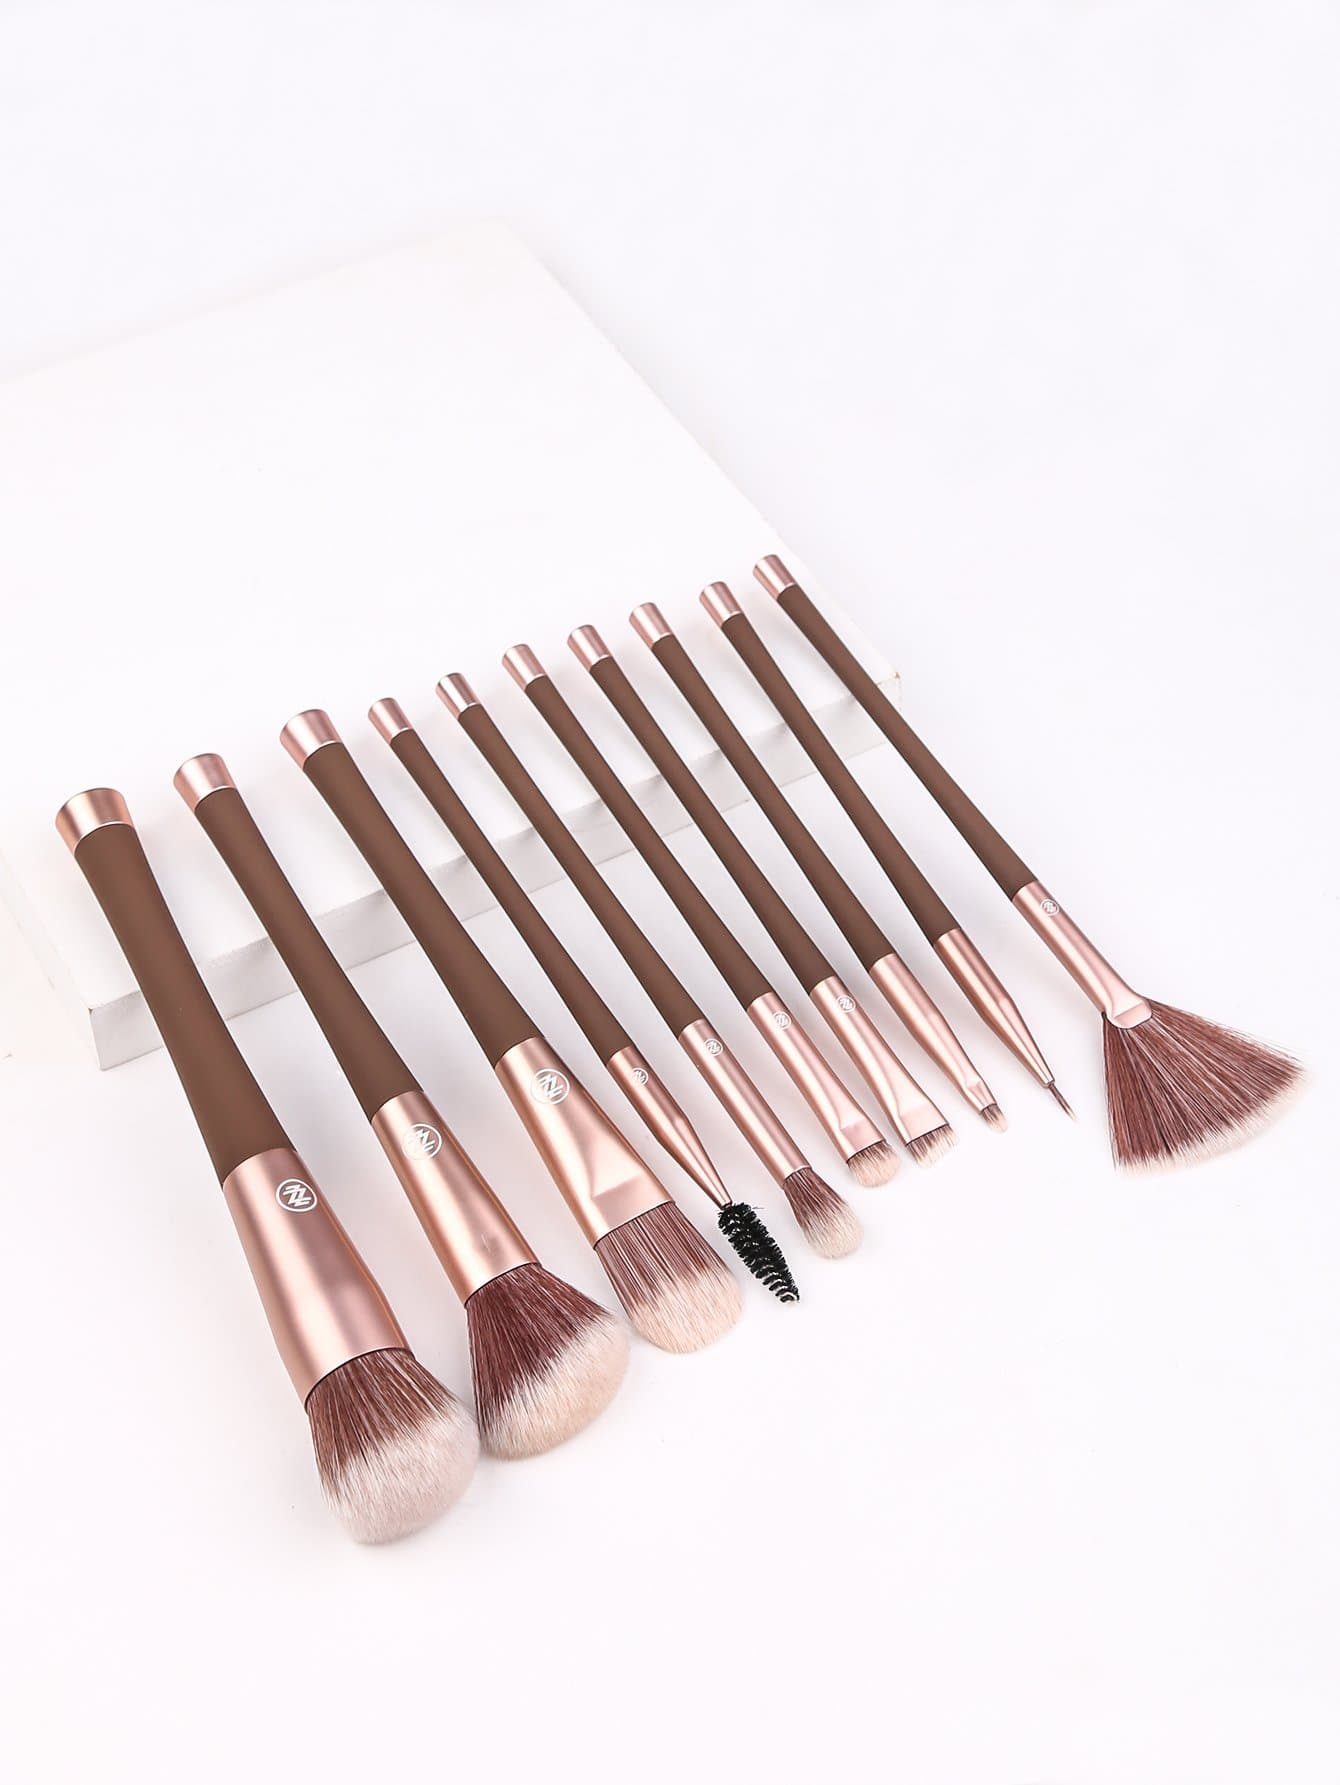 Soft Makeup Brush 10pcs With Bag